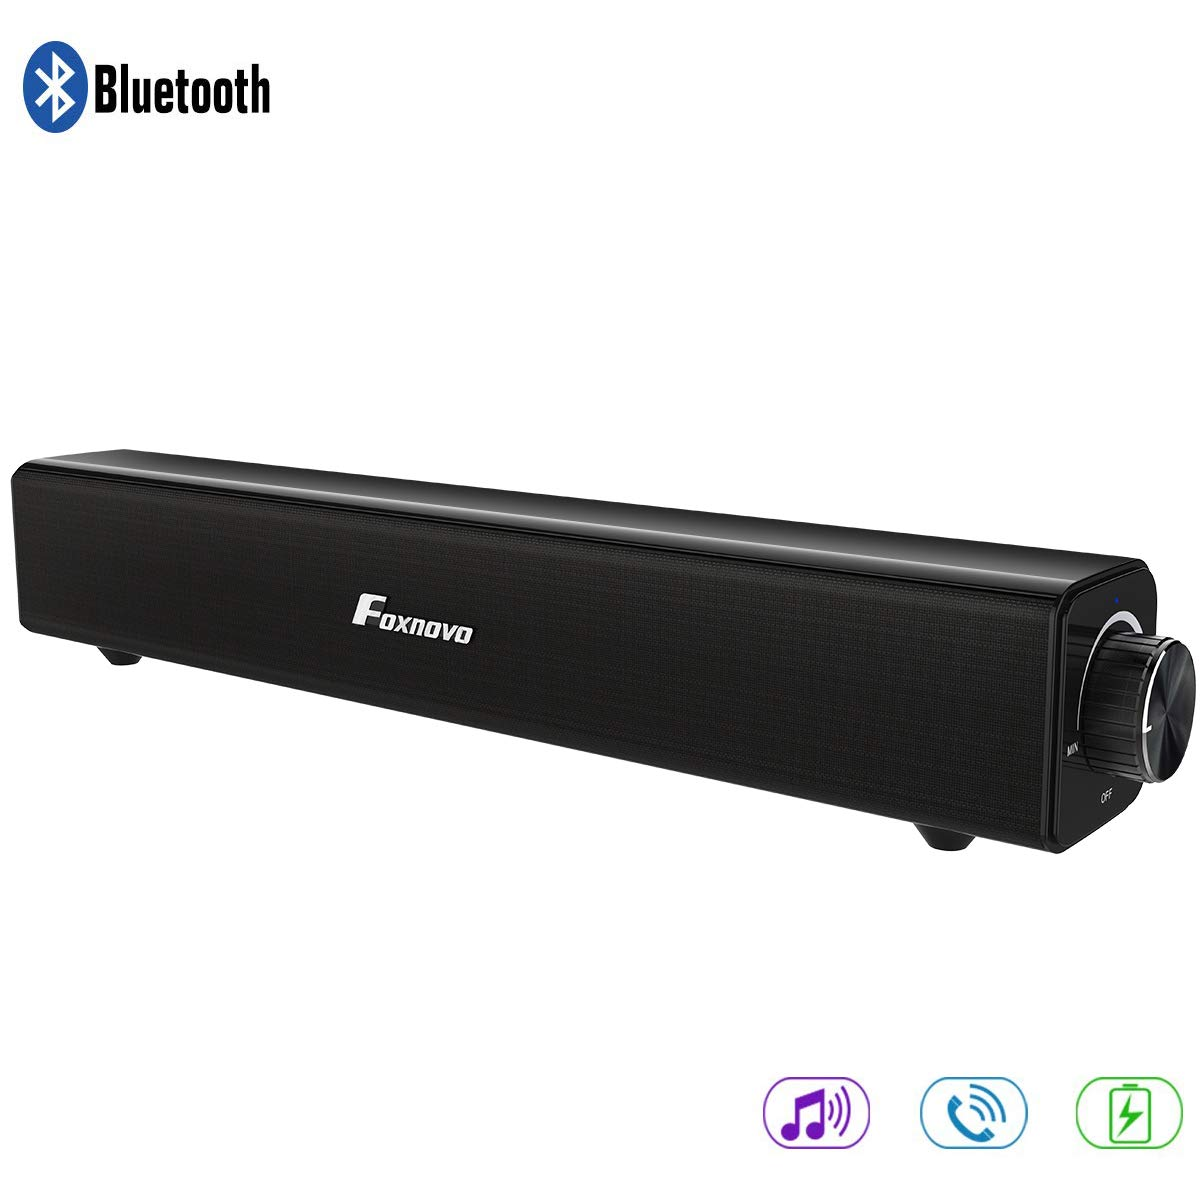 Soundbar, Foxnovo Soundbar TV 20W Wired and Wireless Home Theater Bluetooth Speaker Audio Surround Bluetooth Soundbar for TV, PC, Cell Phone, Tablets Projector or Wireless Devices (Black)